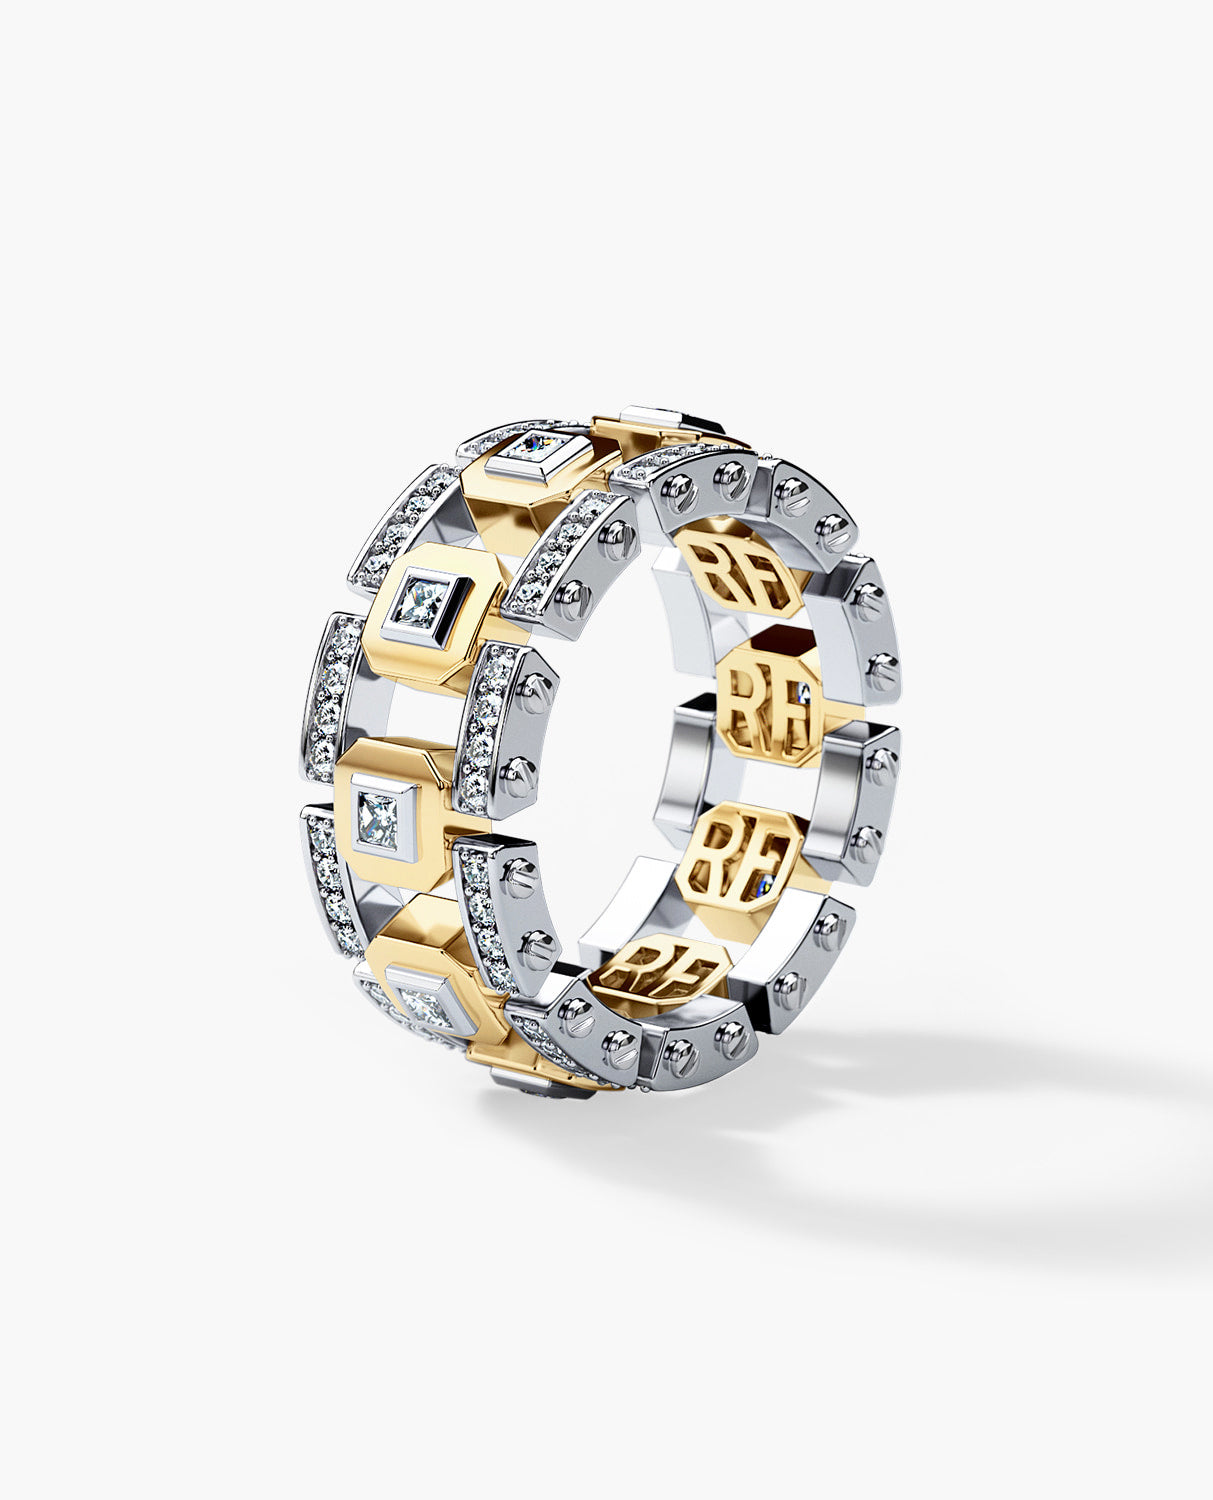 It is just a graphic of LA PAZ Mens Two-Tone Gold Wedding Band with 40.40ct Diamonds